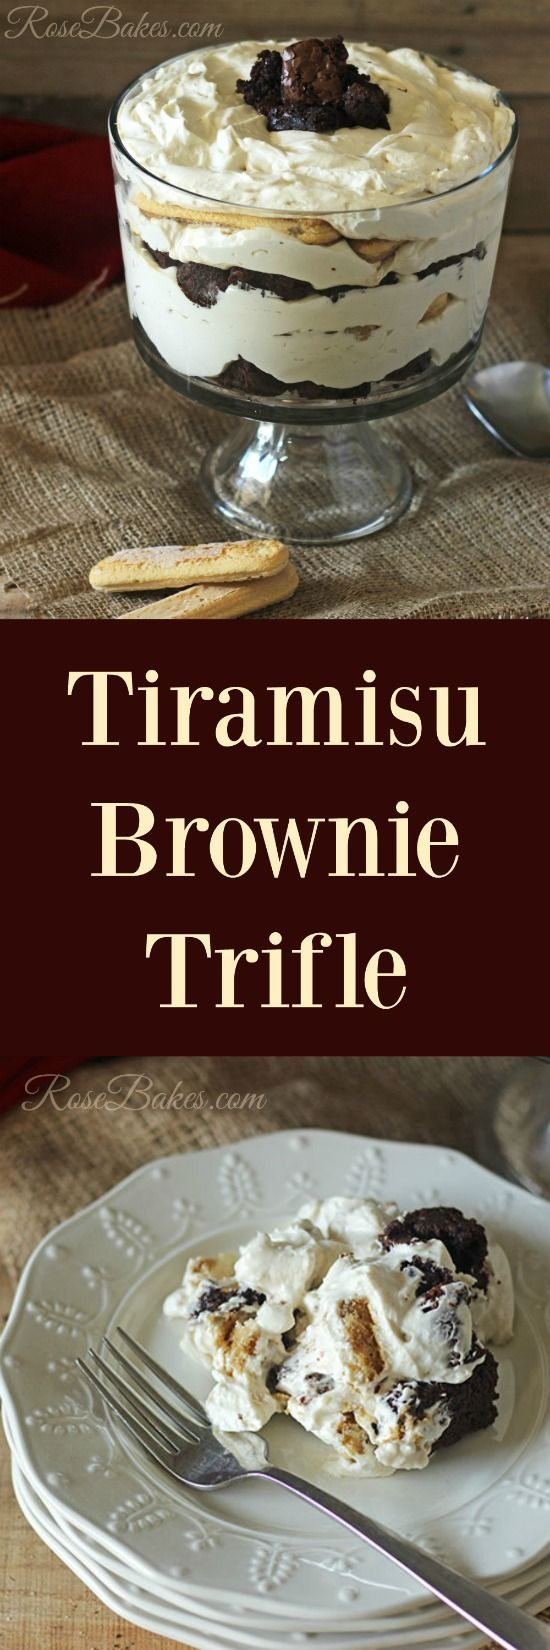 Tiramisu Brownie Trifle Layers of Brownie, Whipped Cream Cheese Filling & Coffee-soaked Lady Fingers by RoseBakes.com #PurelySimple #ad